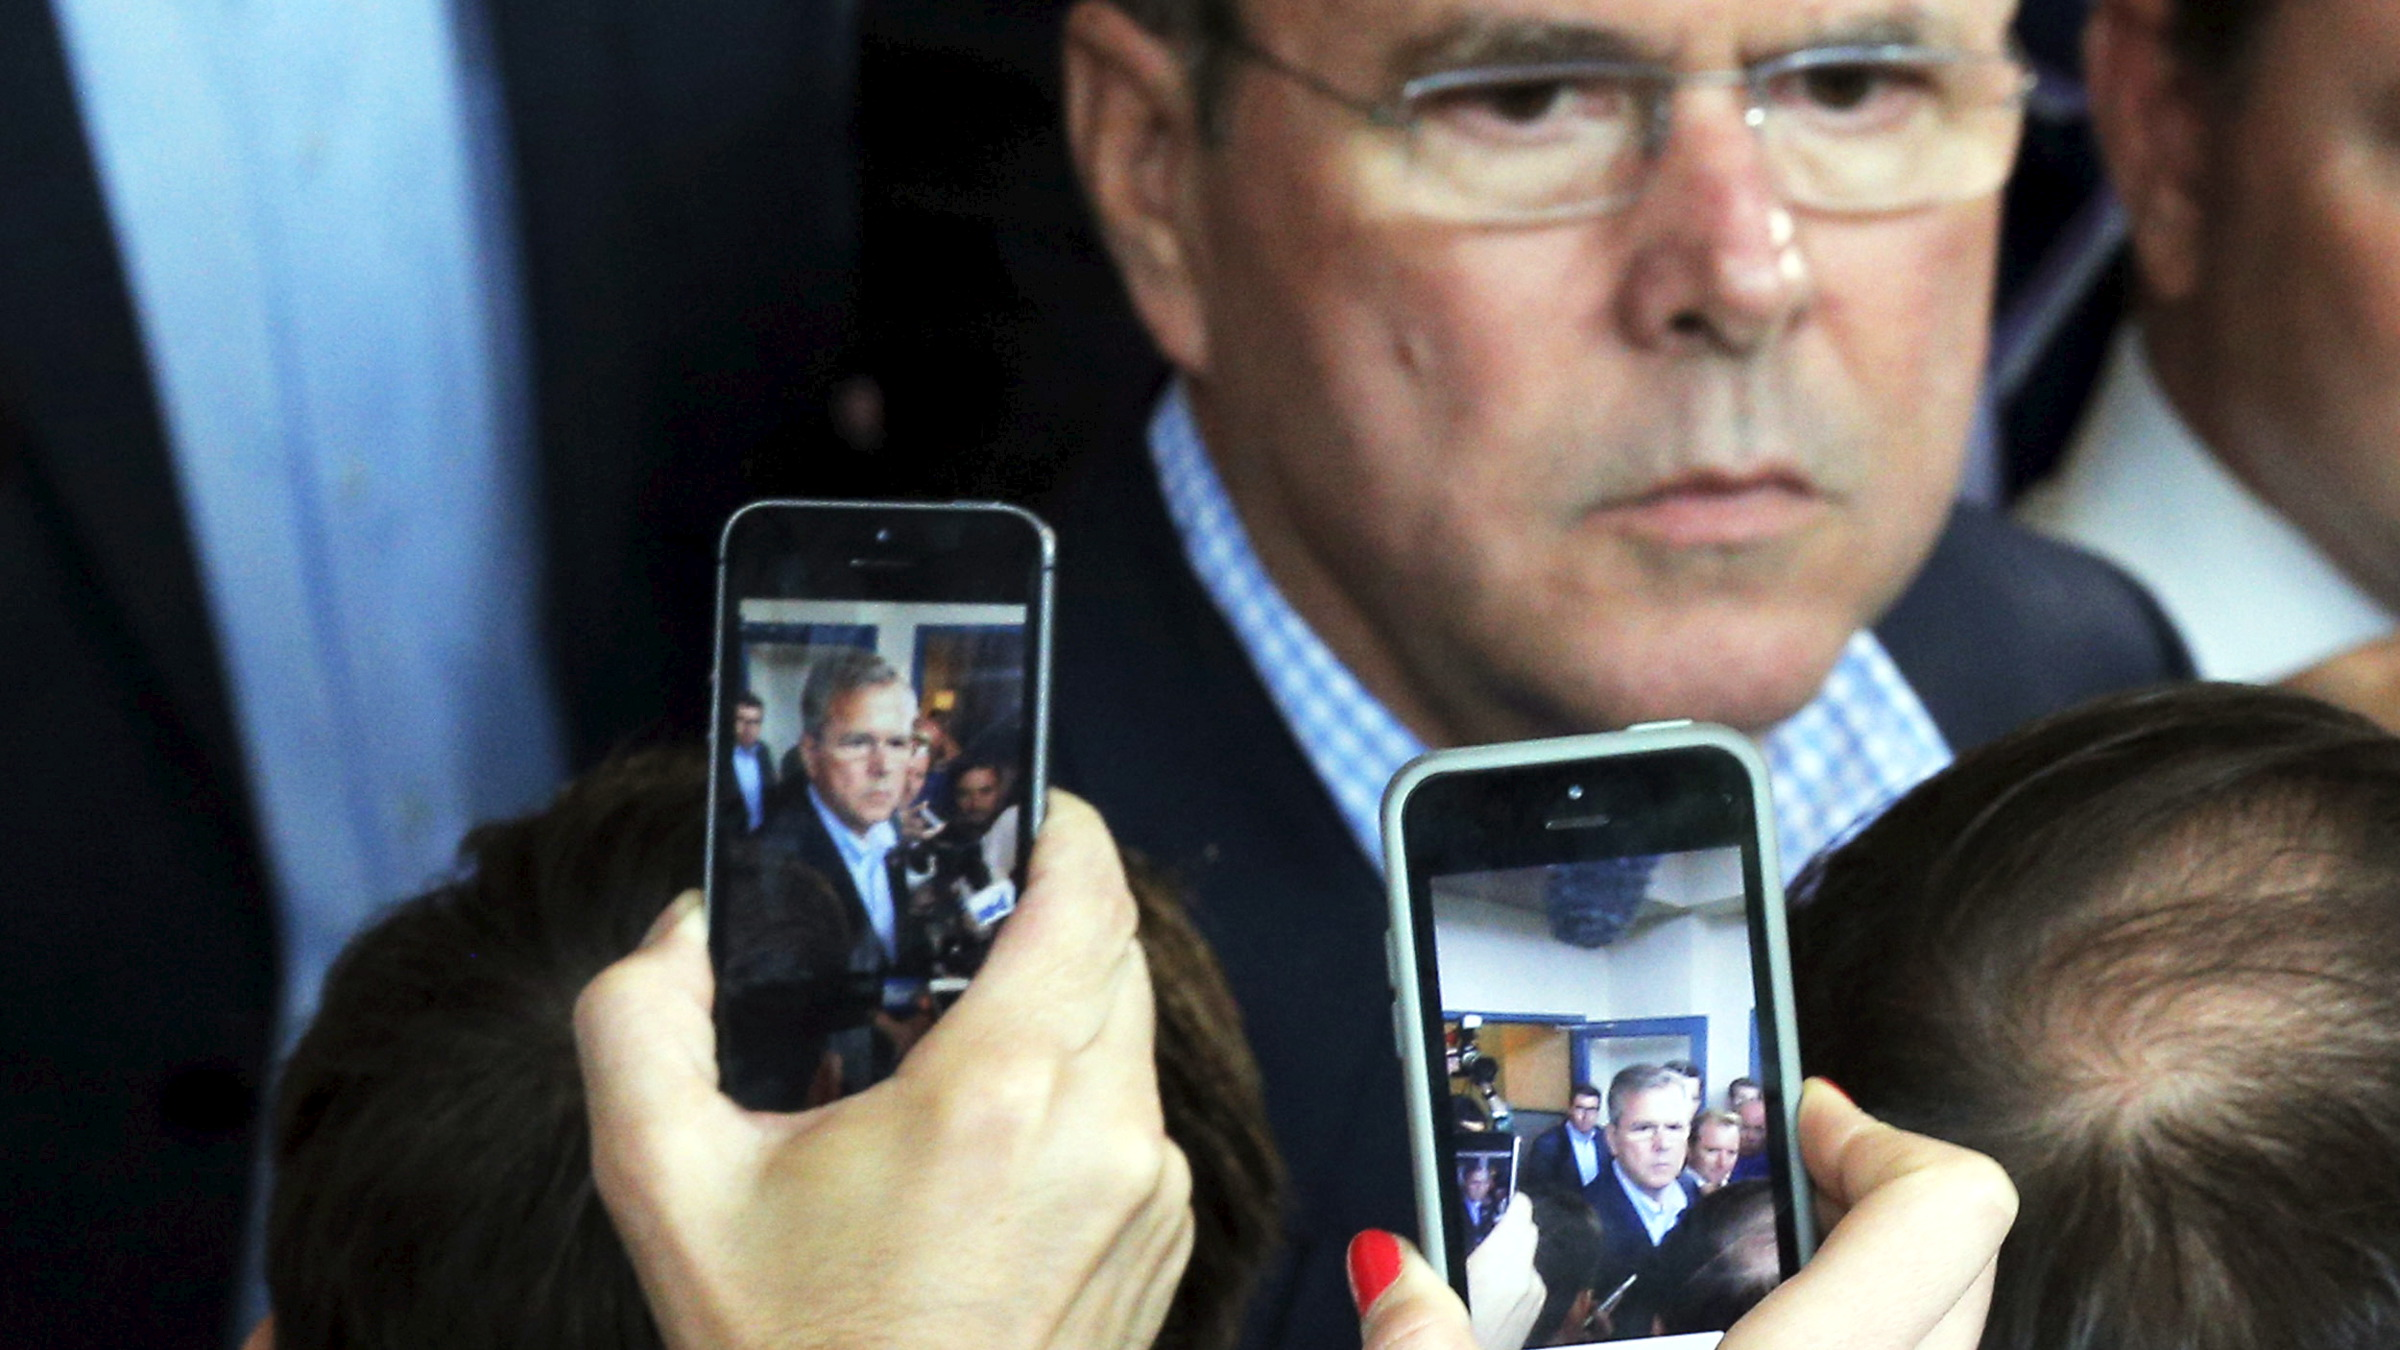 Reporters use their mobile phones to record potential 2016 Republican presidential candidate and former Florida Governor Jeb Bush as he answers questions after speaking at a business roundtable in Portsmouth, New Hampshire May 20, 2015.